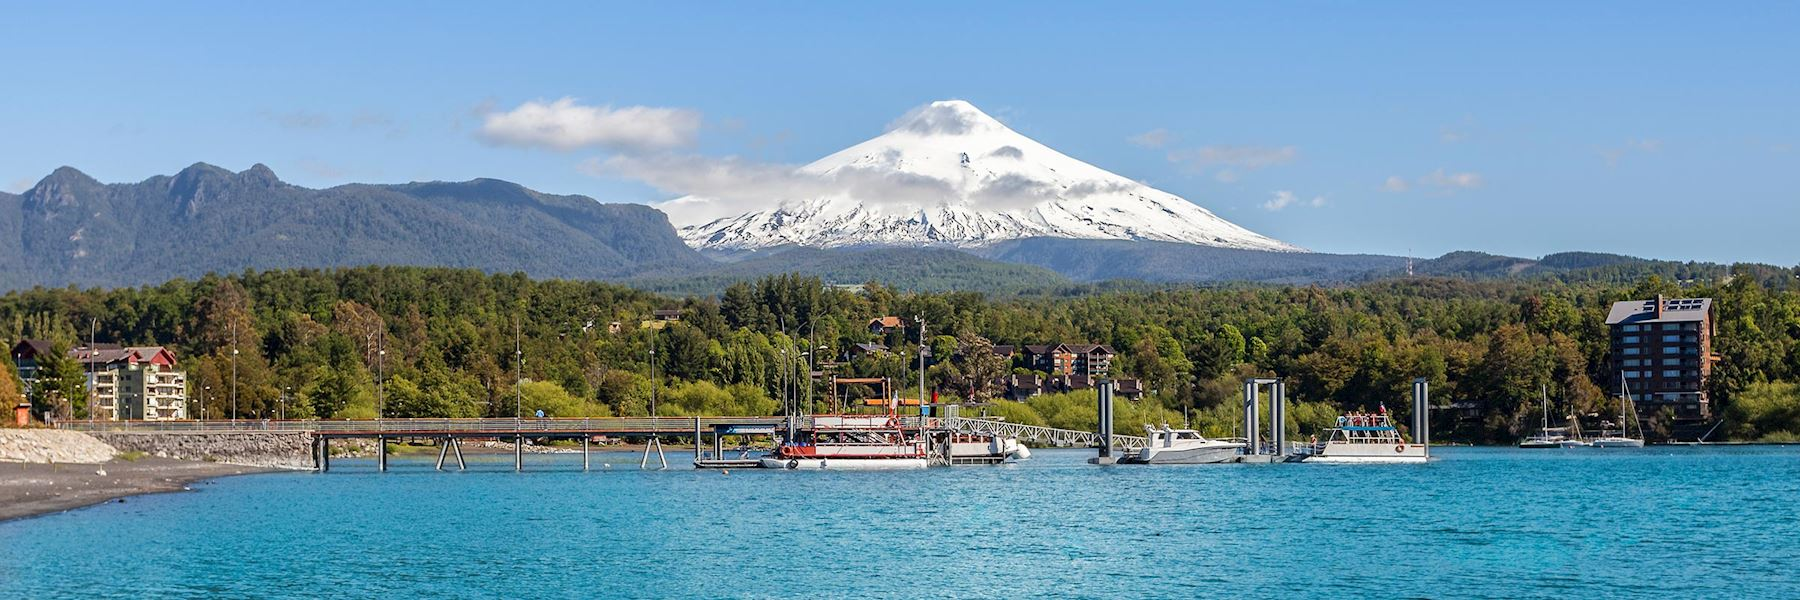 Visit the Northern Lake District, Chile